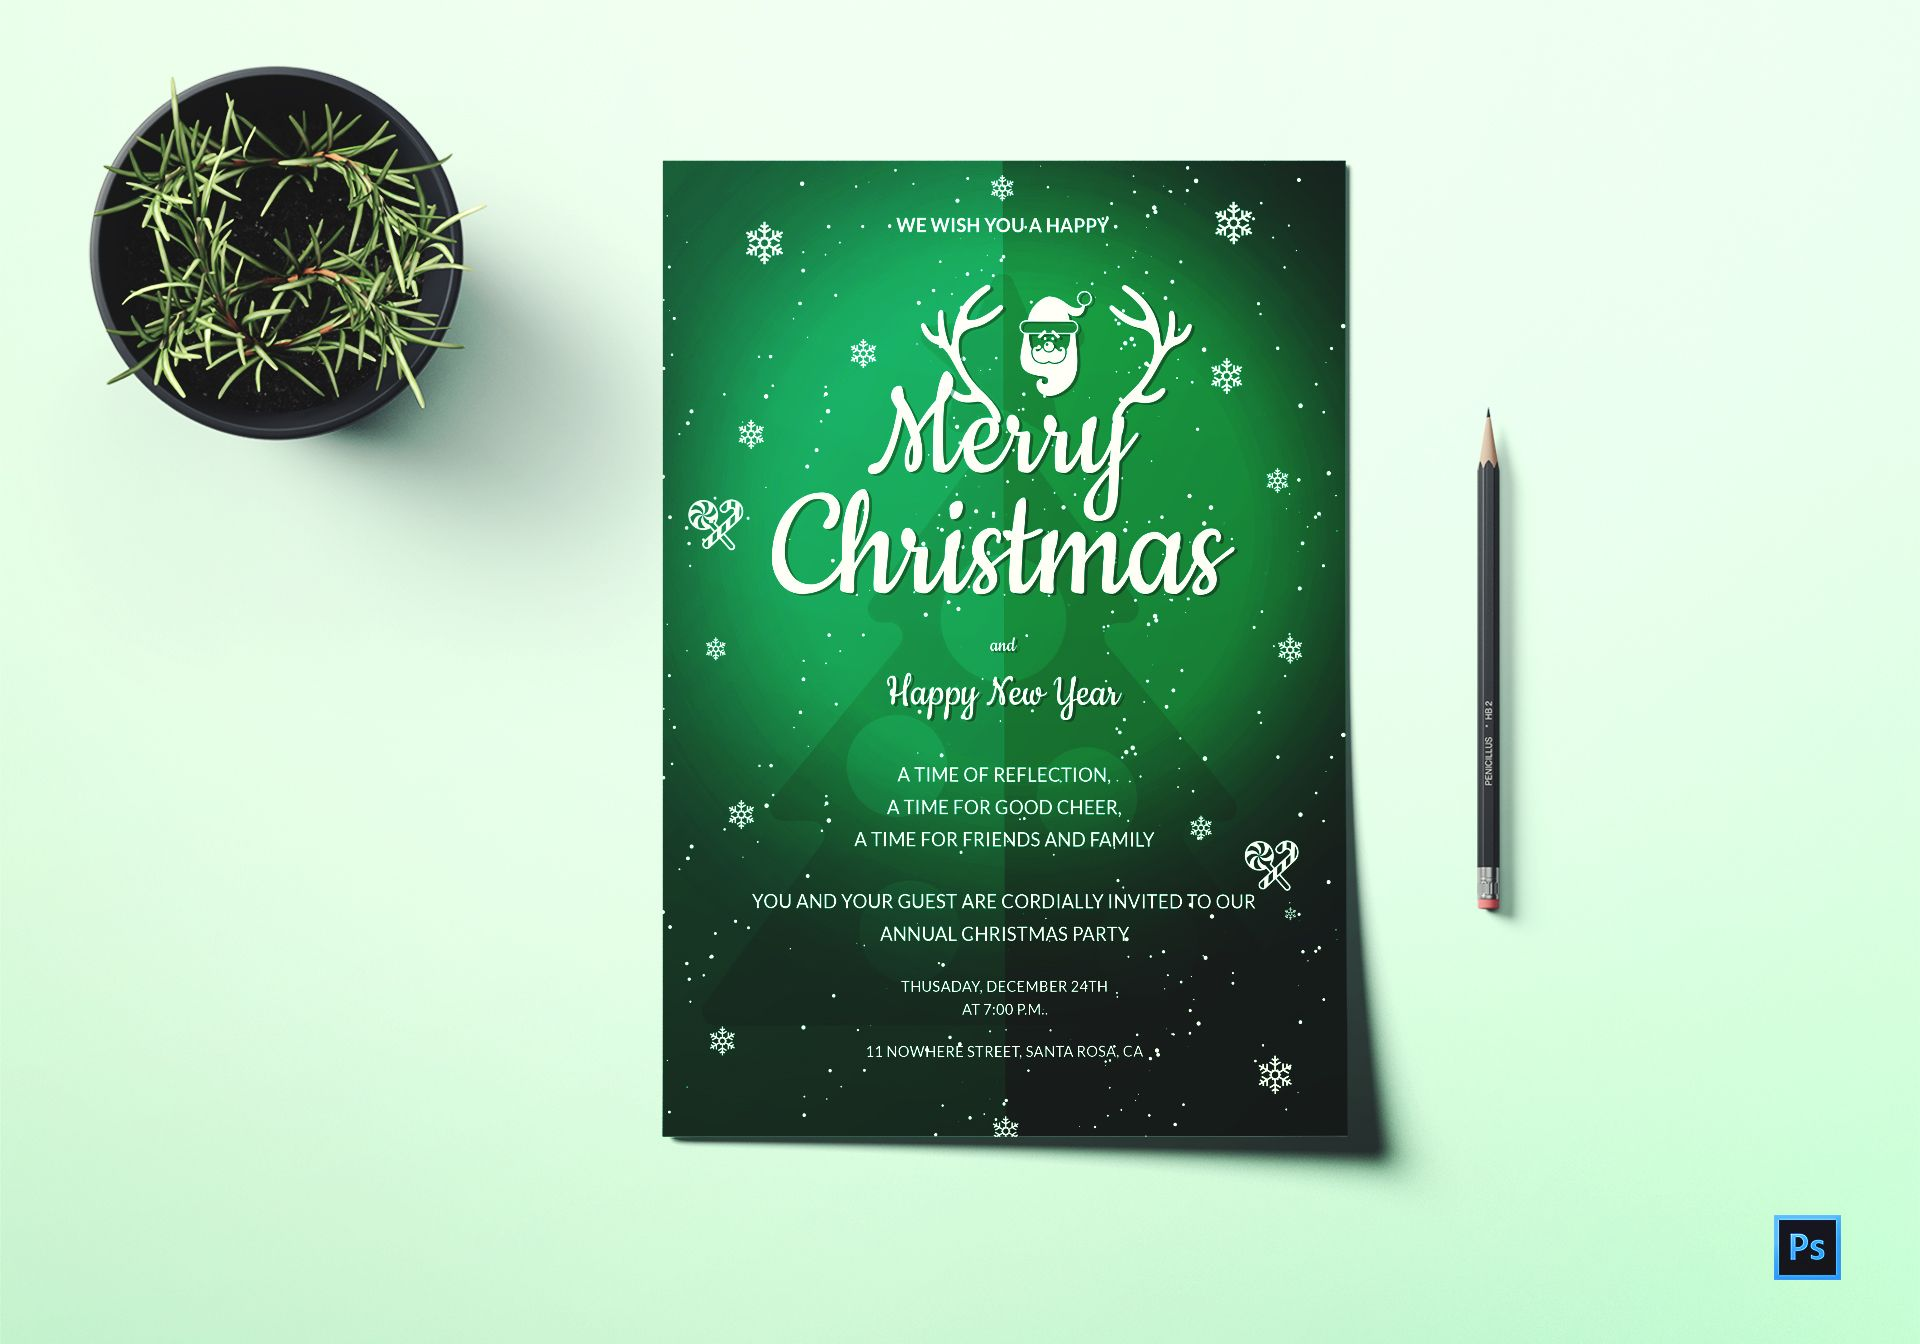 Annual Christmas Party Invitation Template